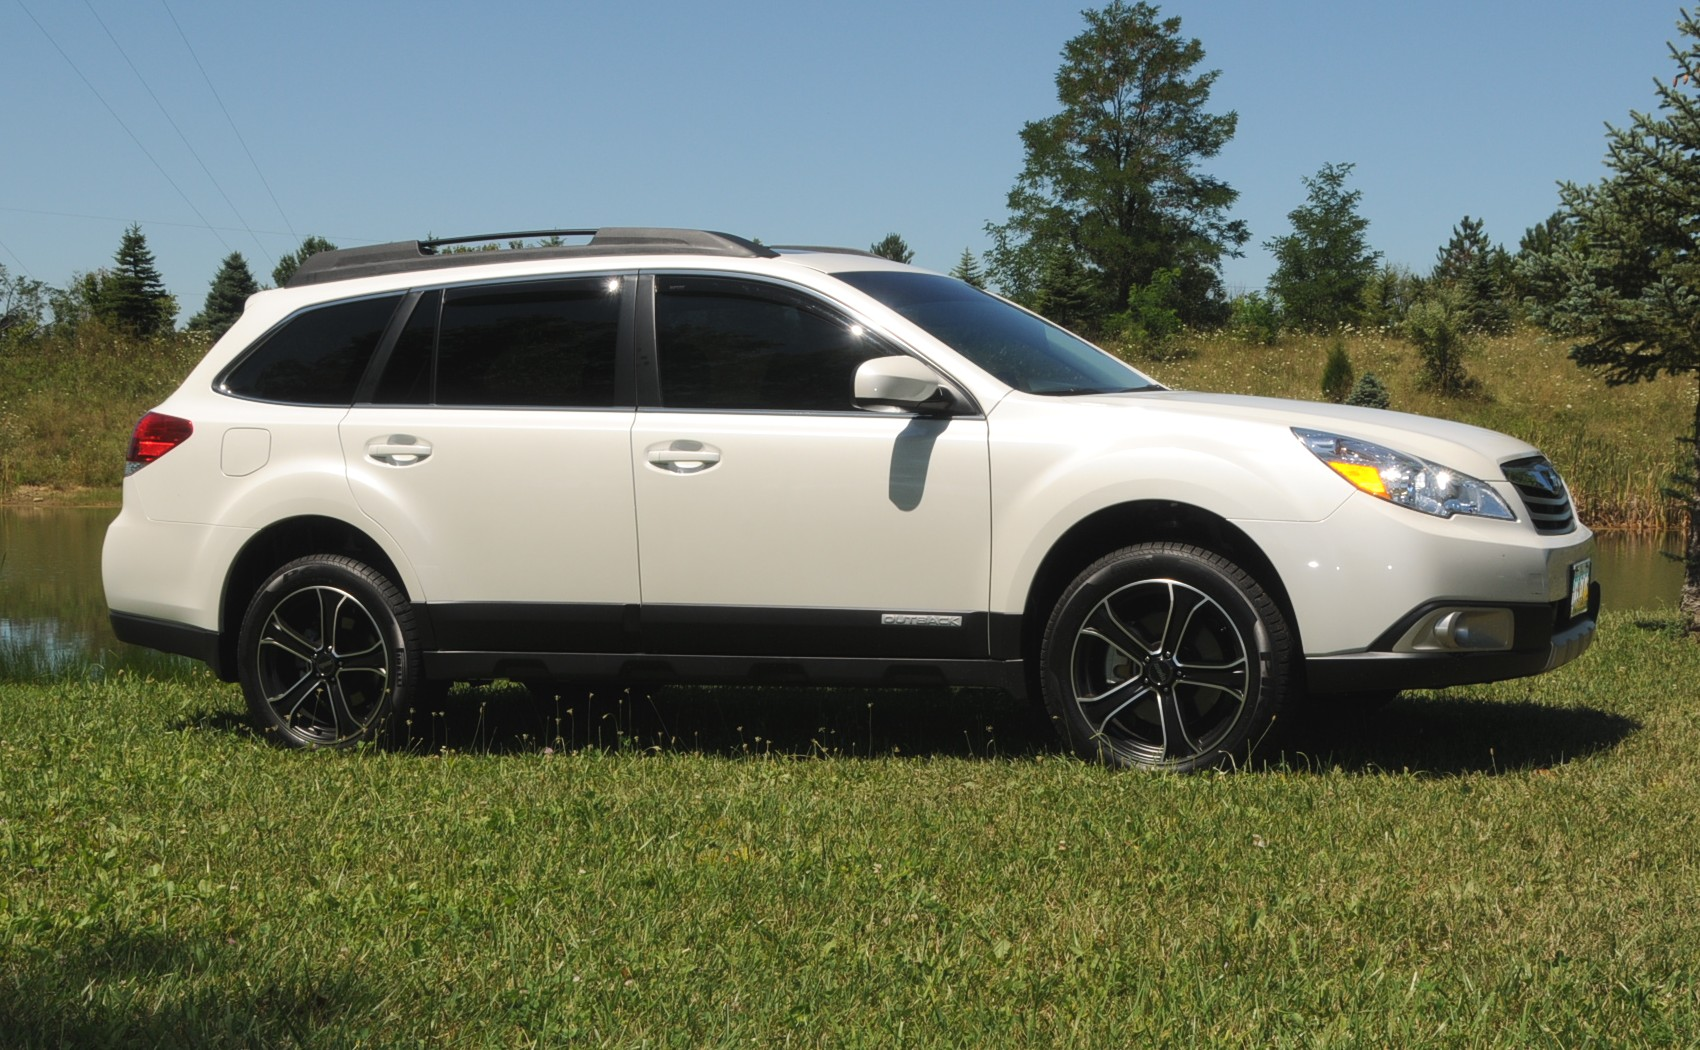 Pictures of Subaru Outback Aftermarket Wheels